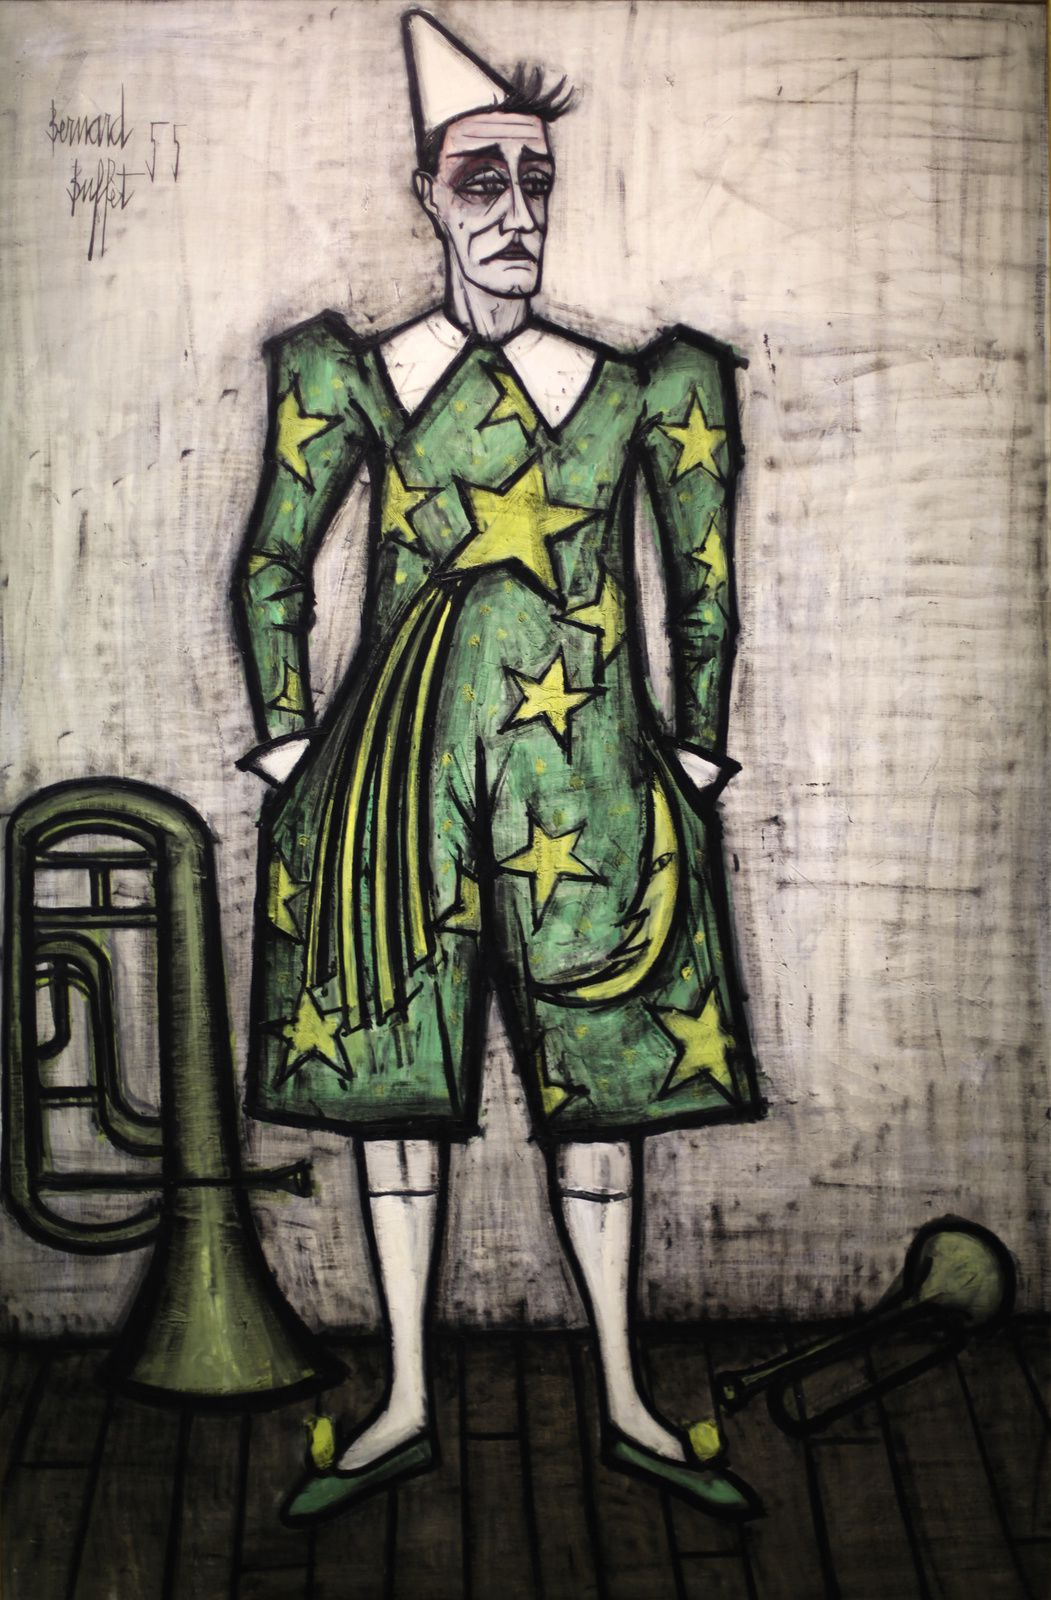 """Le Cirque, clown au Trombone"", 1955 de Bernard BUFFET - Courtesy Musée B. Buffet © Photo Éric Simon"